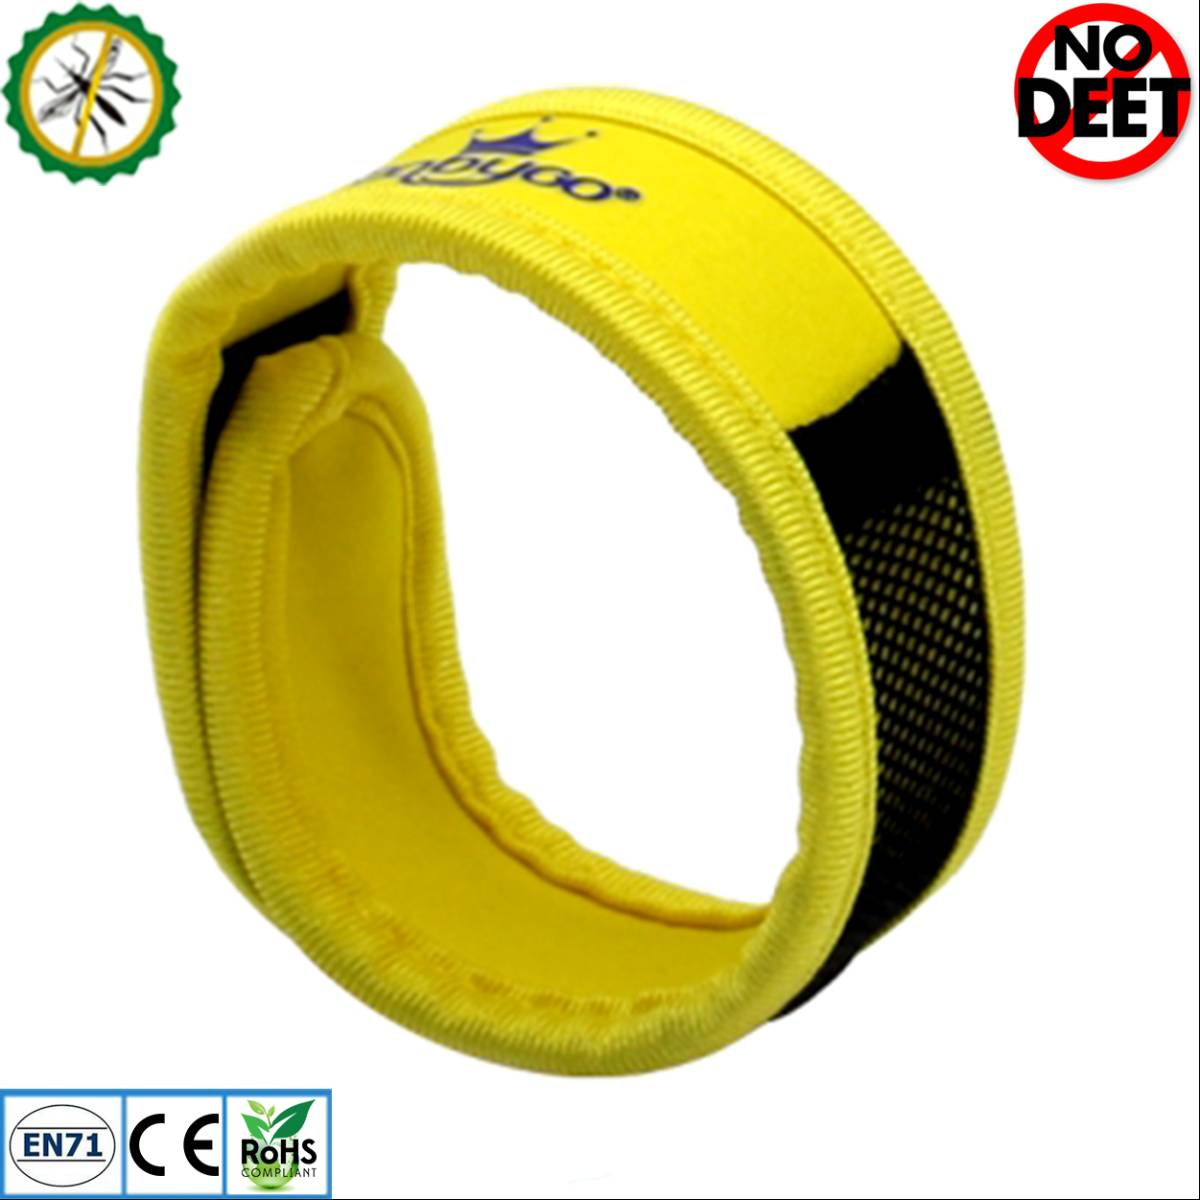 Babygo Neoprene Mosquito Repellent Wristband Yellow (gelang Anti Nyamuk)